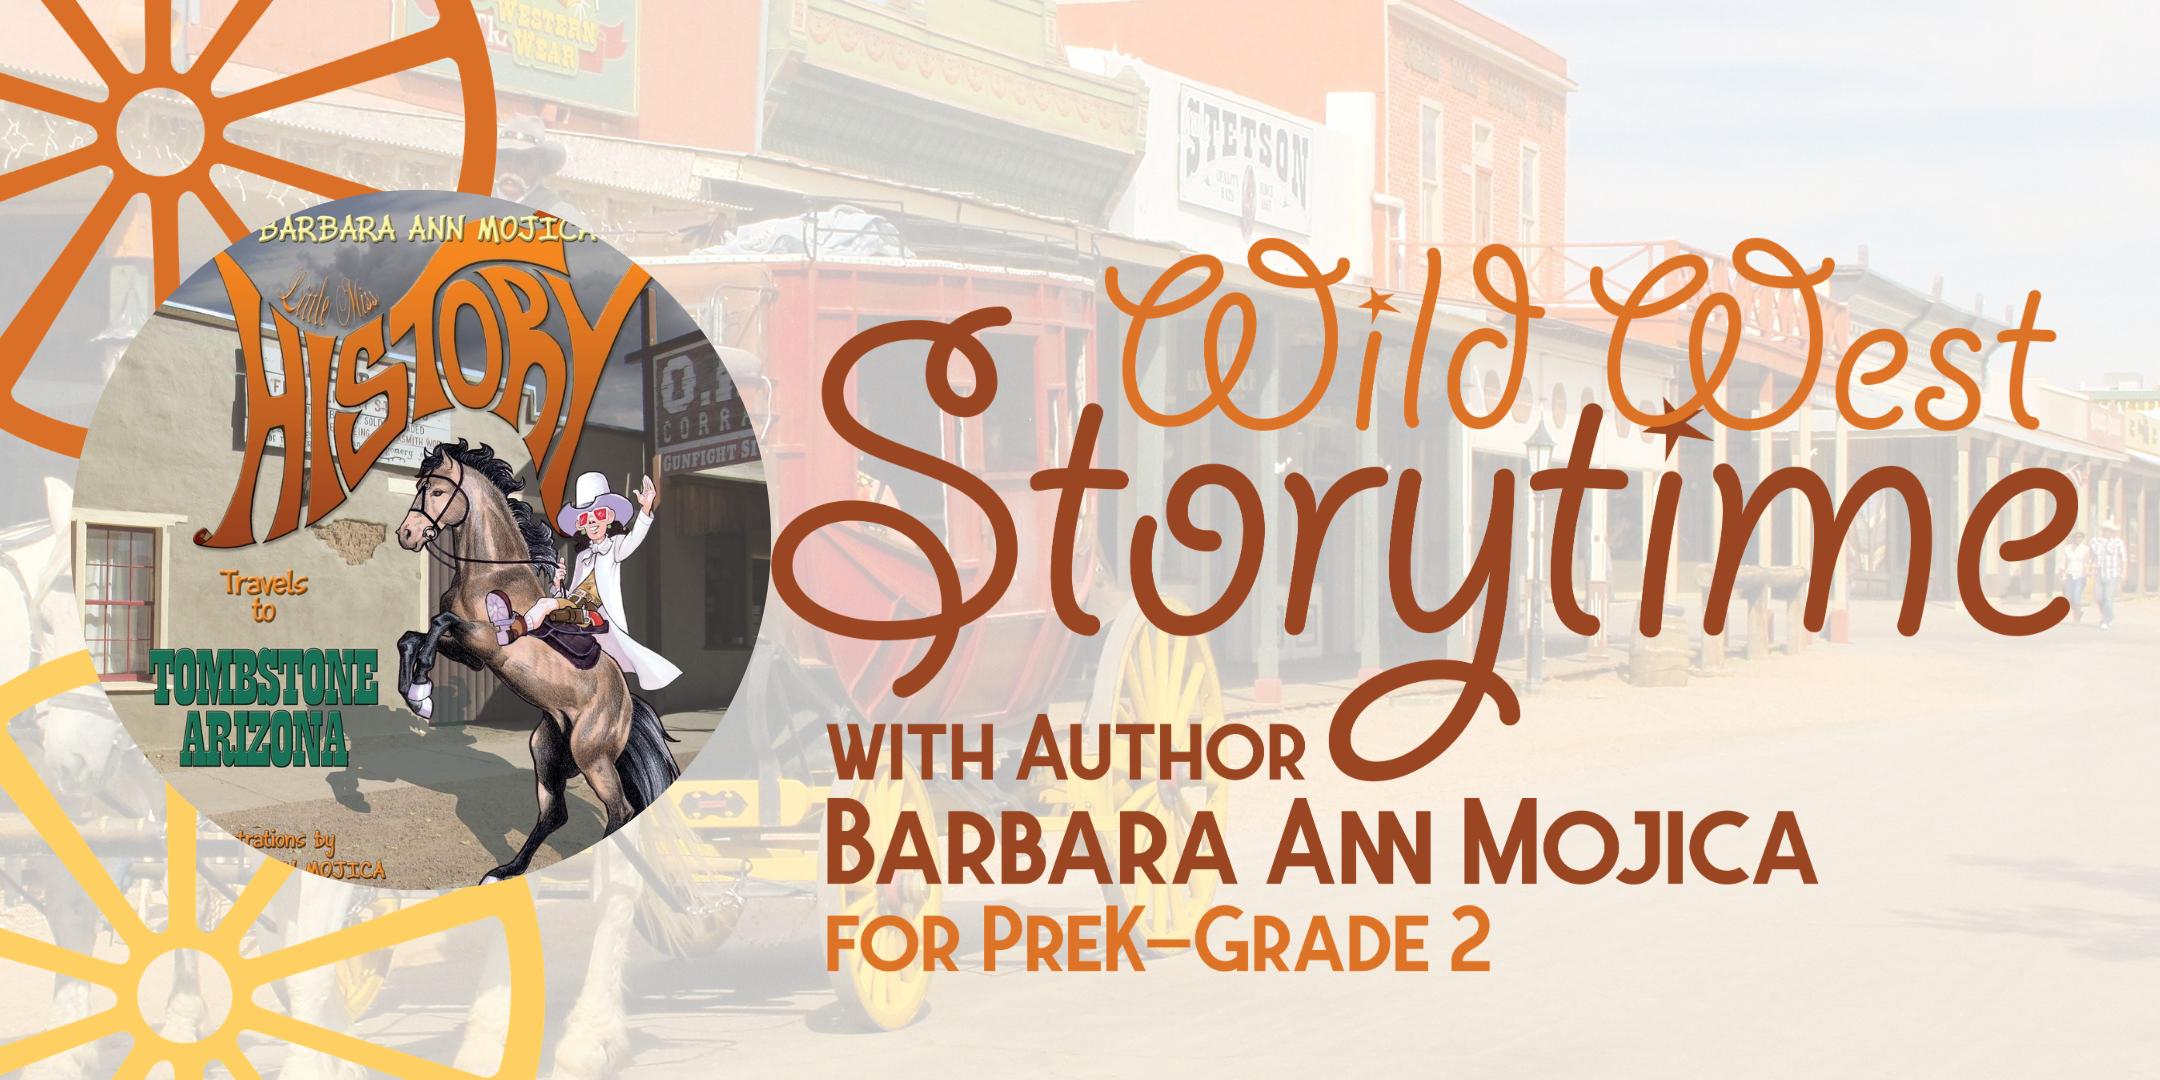 Wild West Storytime with Author Barbara Ann Mojica image